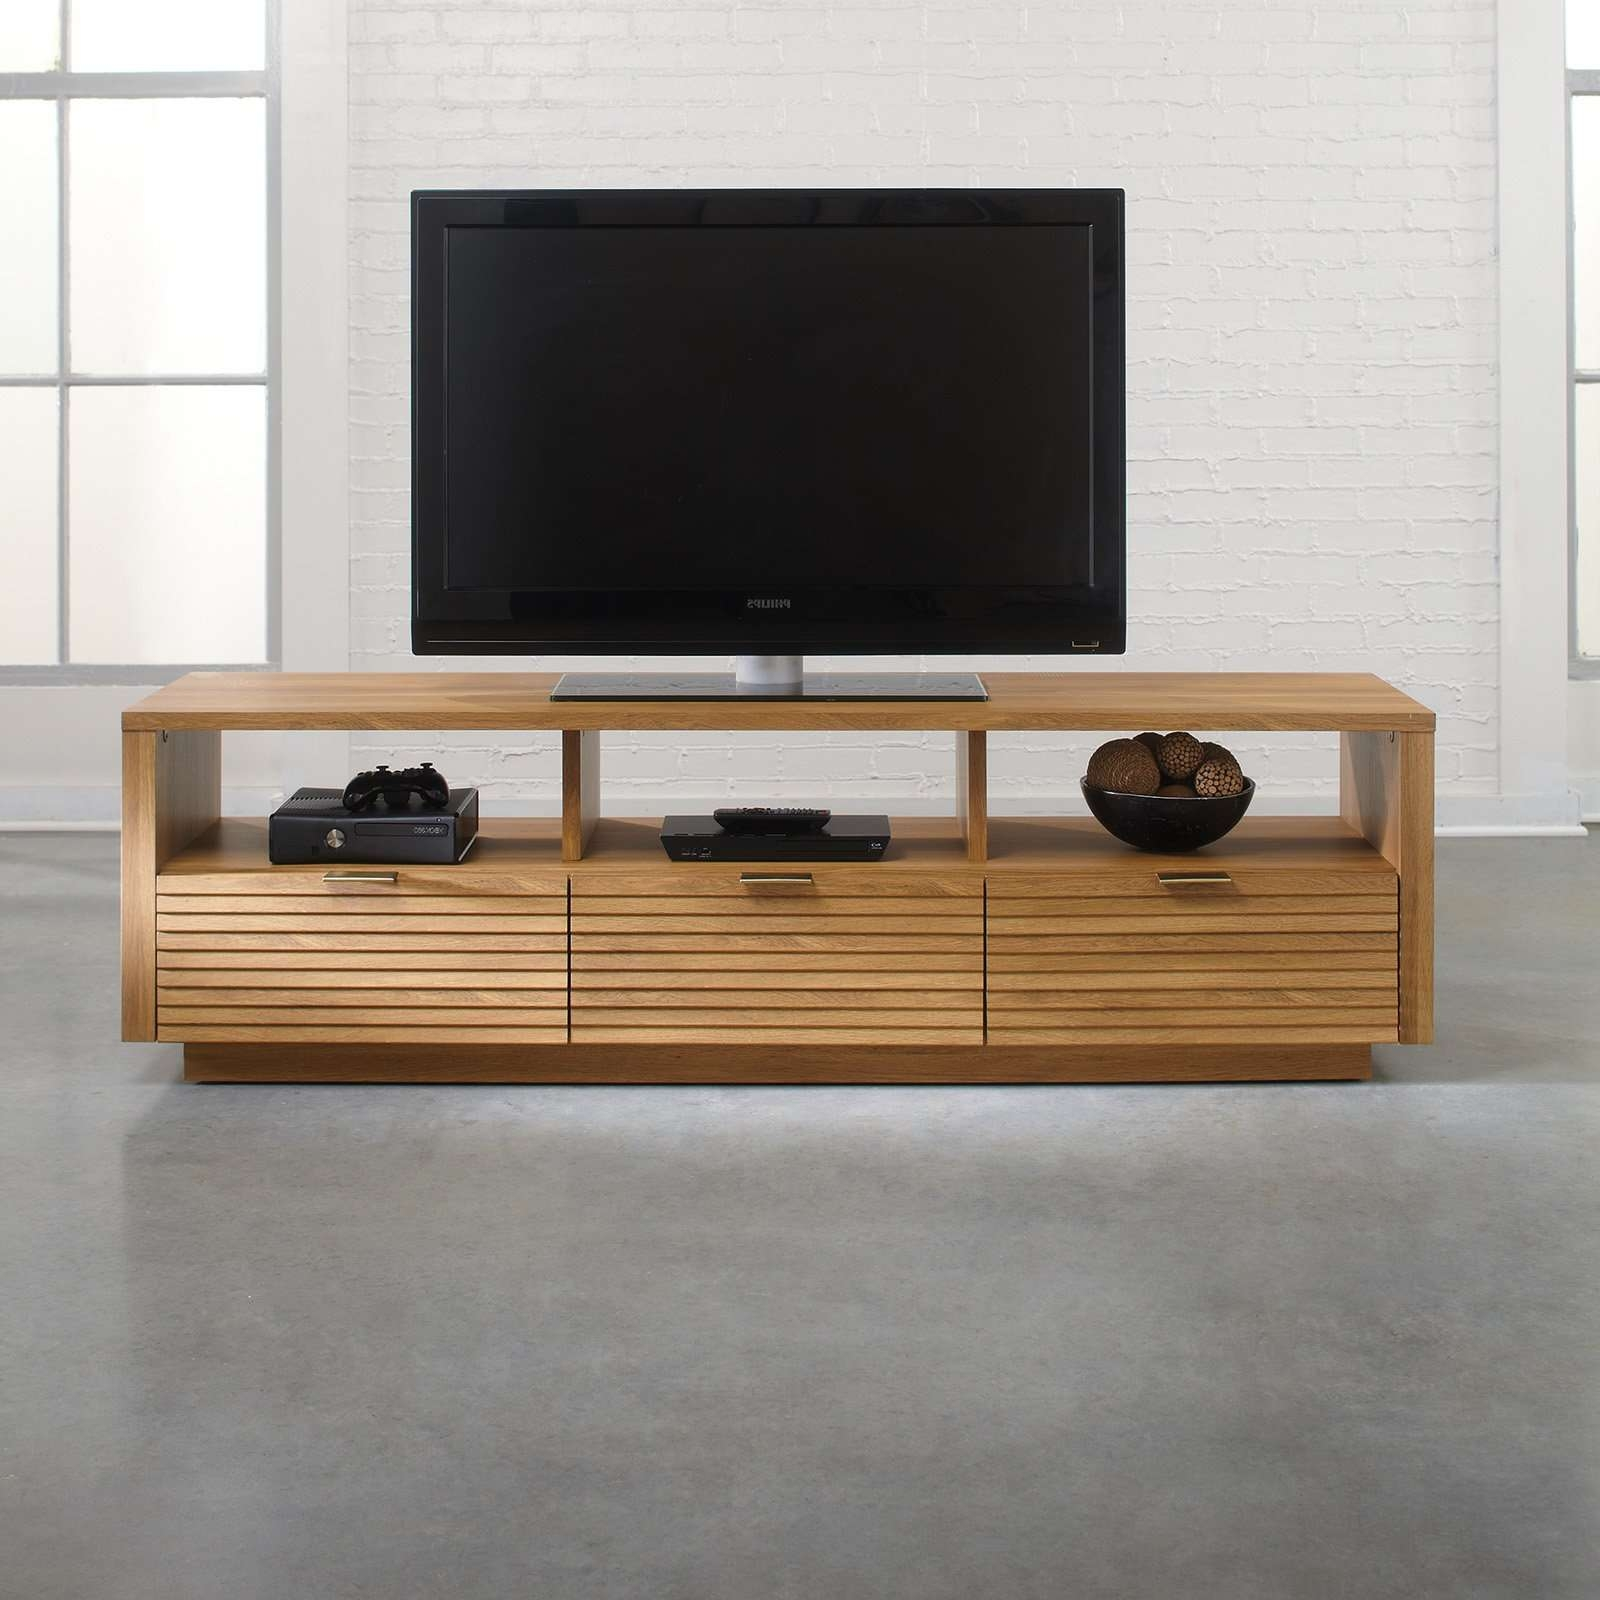 Belham Living Carter Mid Century Modern Tv Stand | Hayneedle Within Modern Wooden Tv Stands (View 15 of 15)